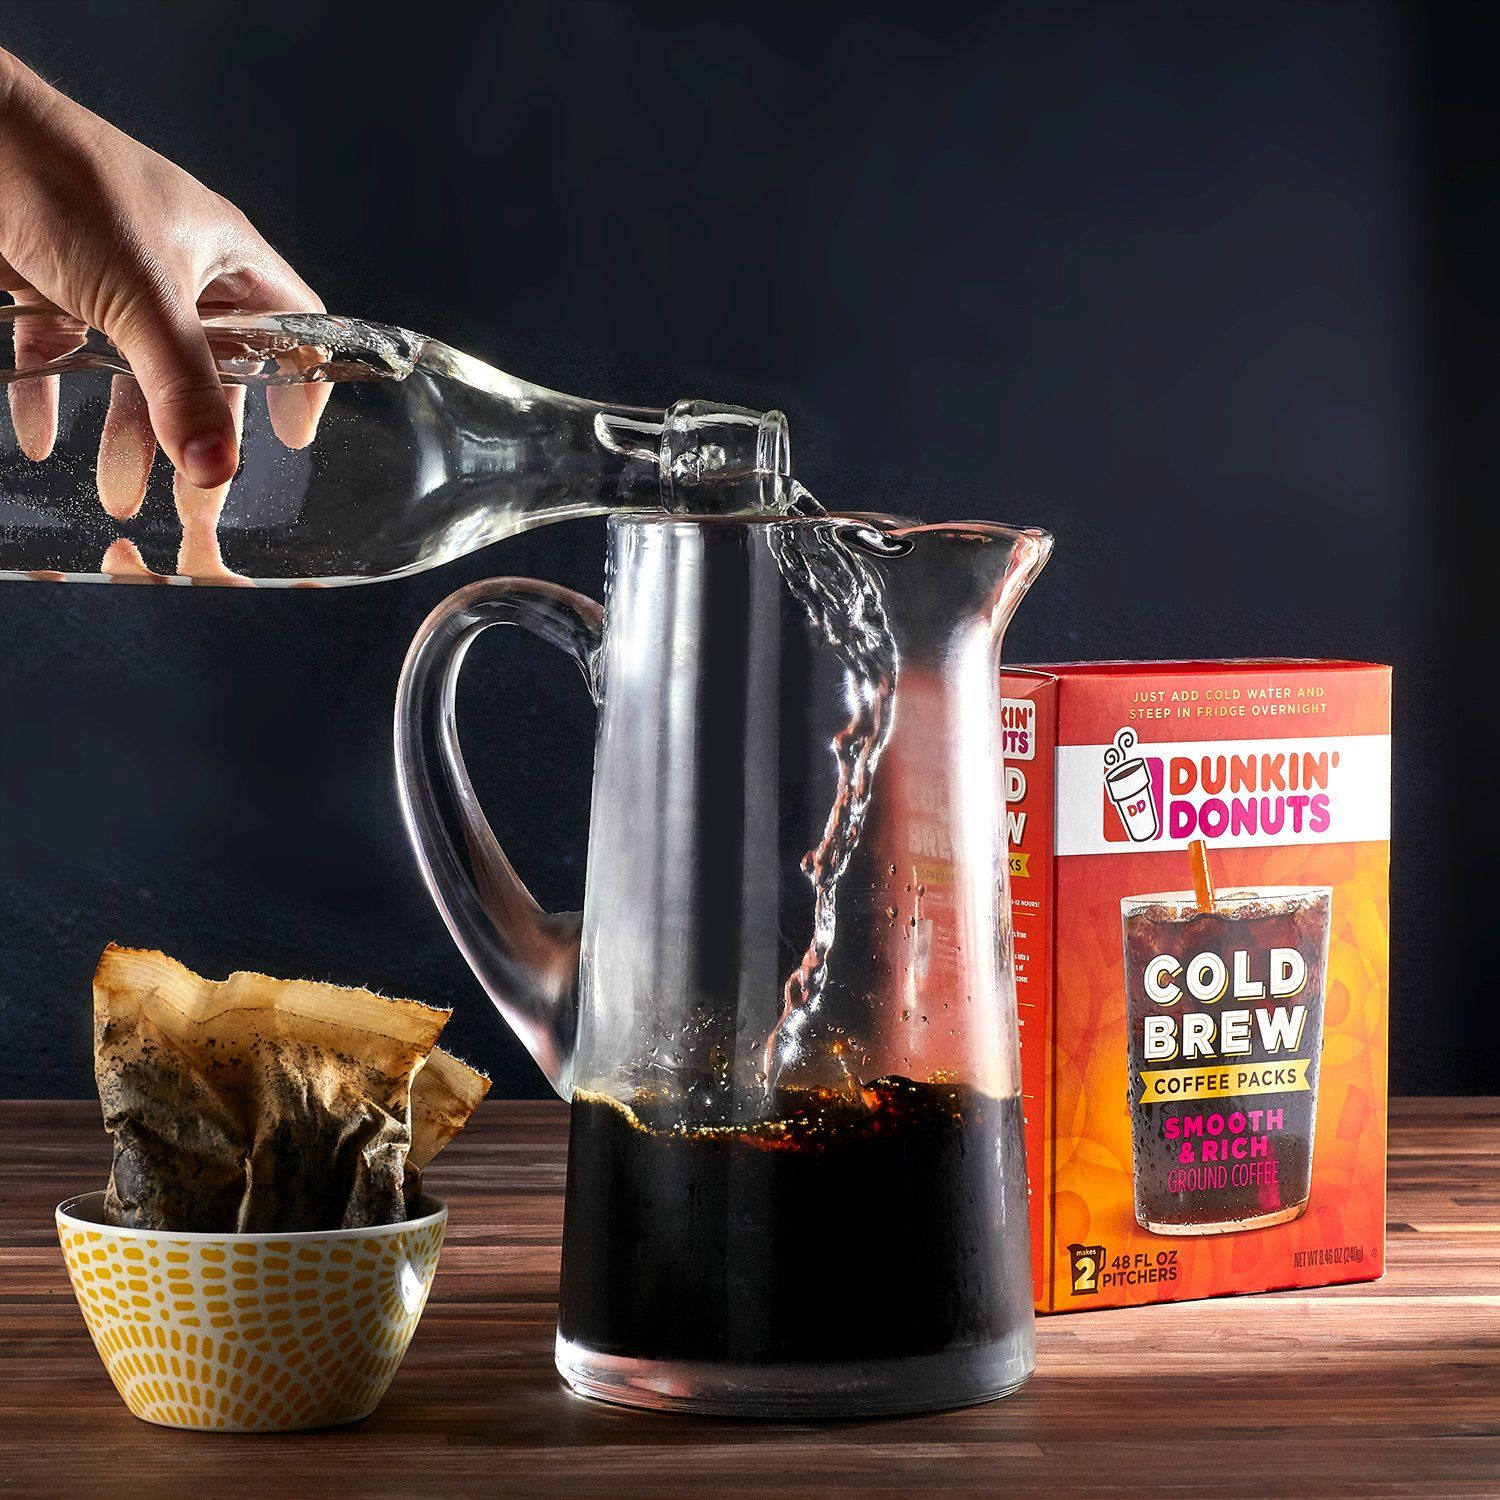 Cold brew coffee is best if served as iced coffee or